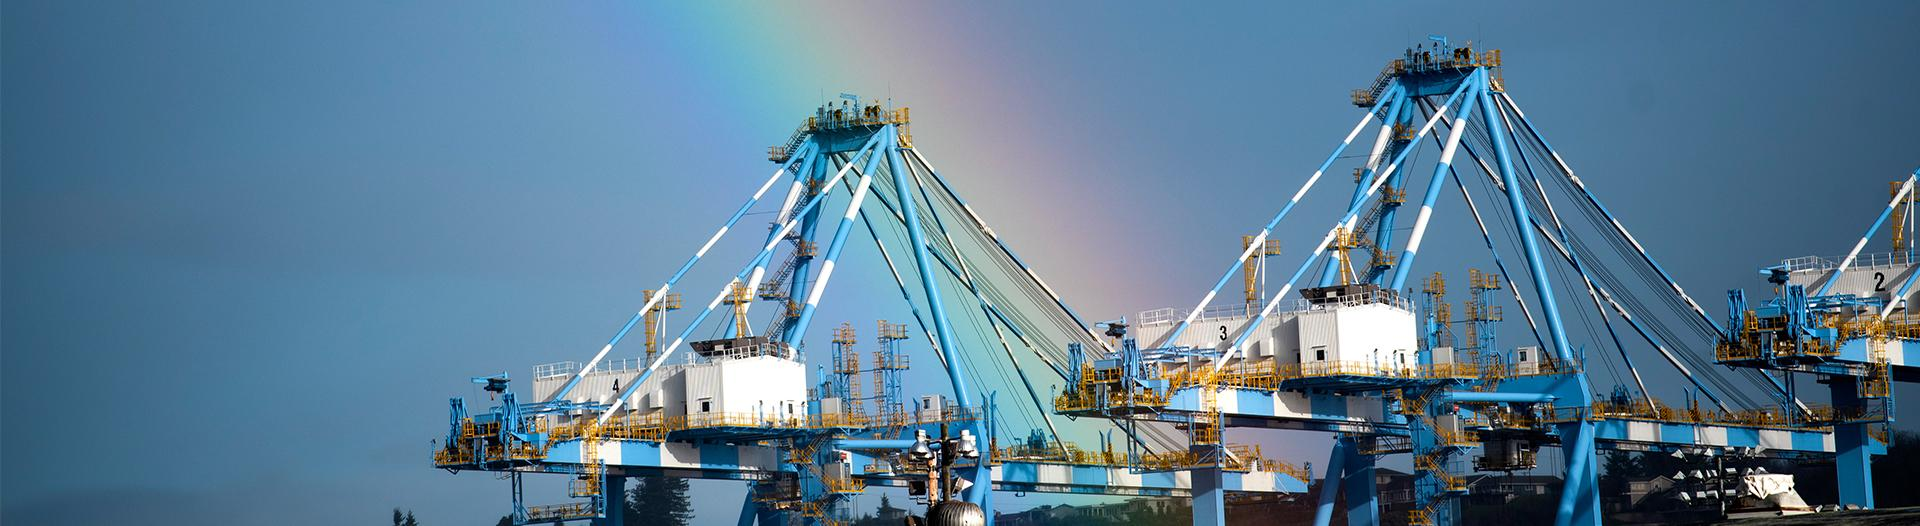 photo of a rainbow over container cranes